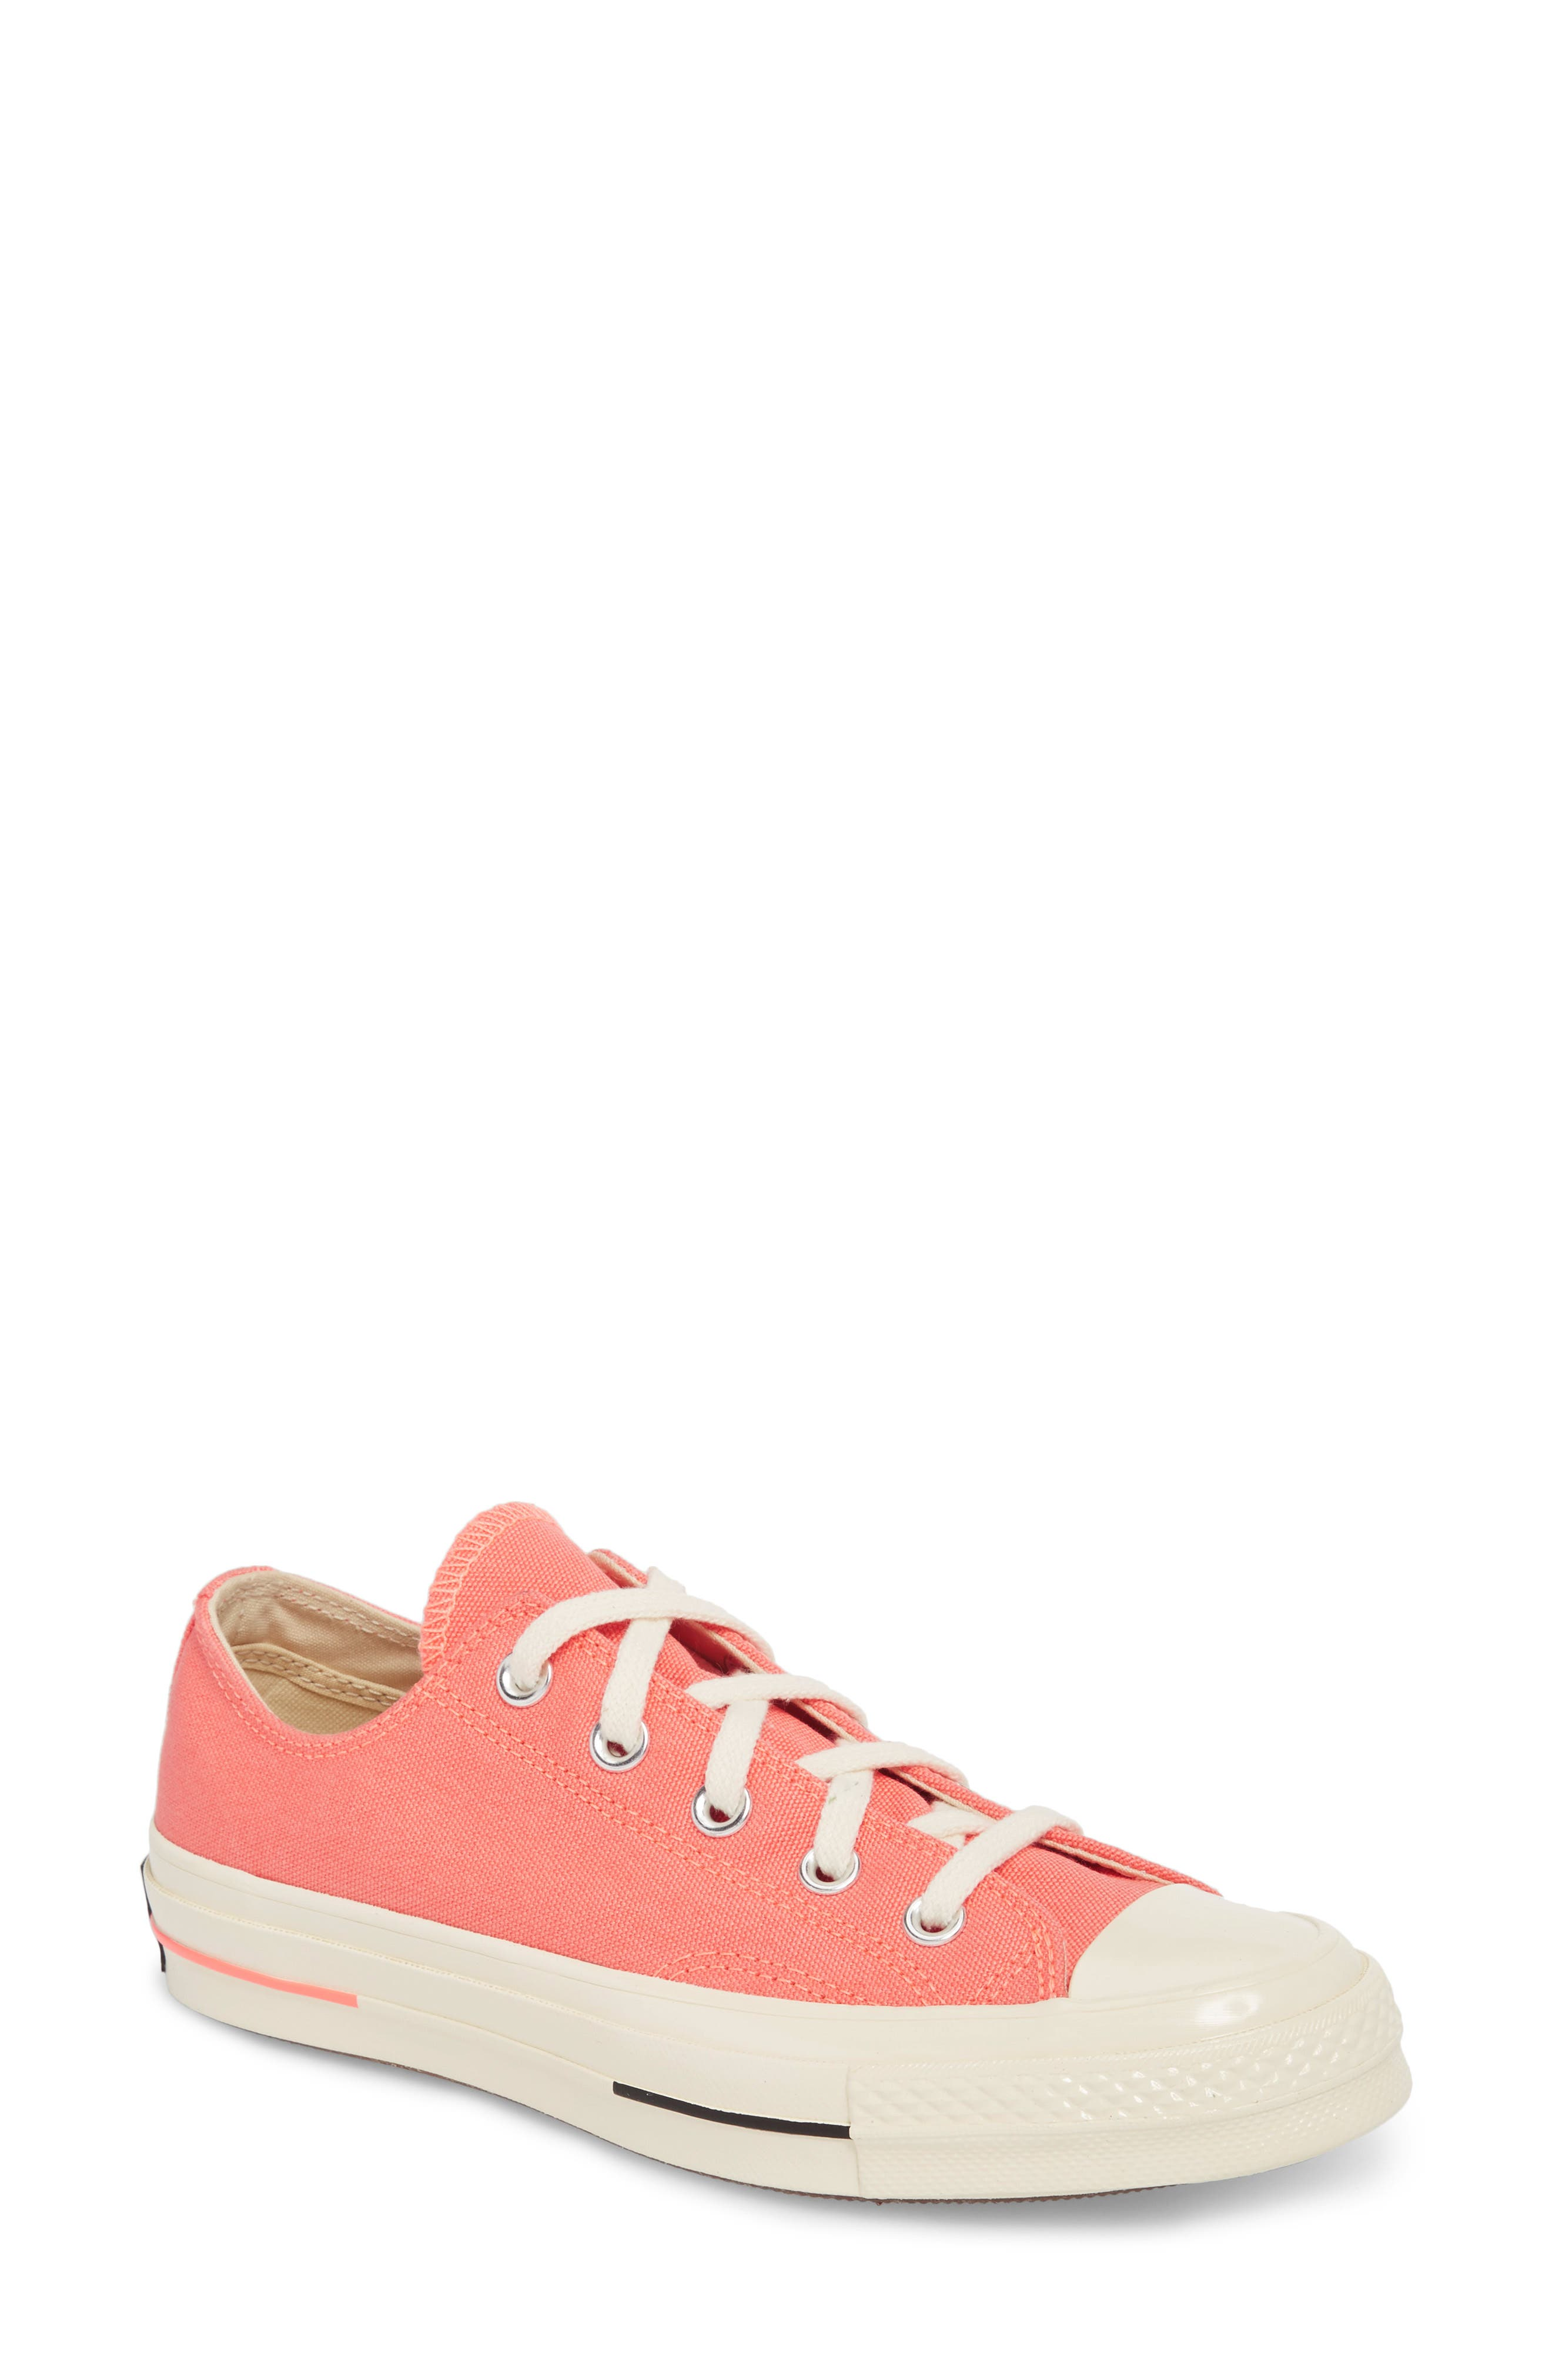 Main Image - Converse Chuck Taylor® All Star® '70s Brights Low Top Sneaker (Women)